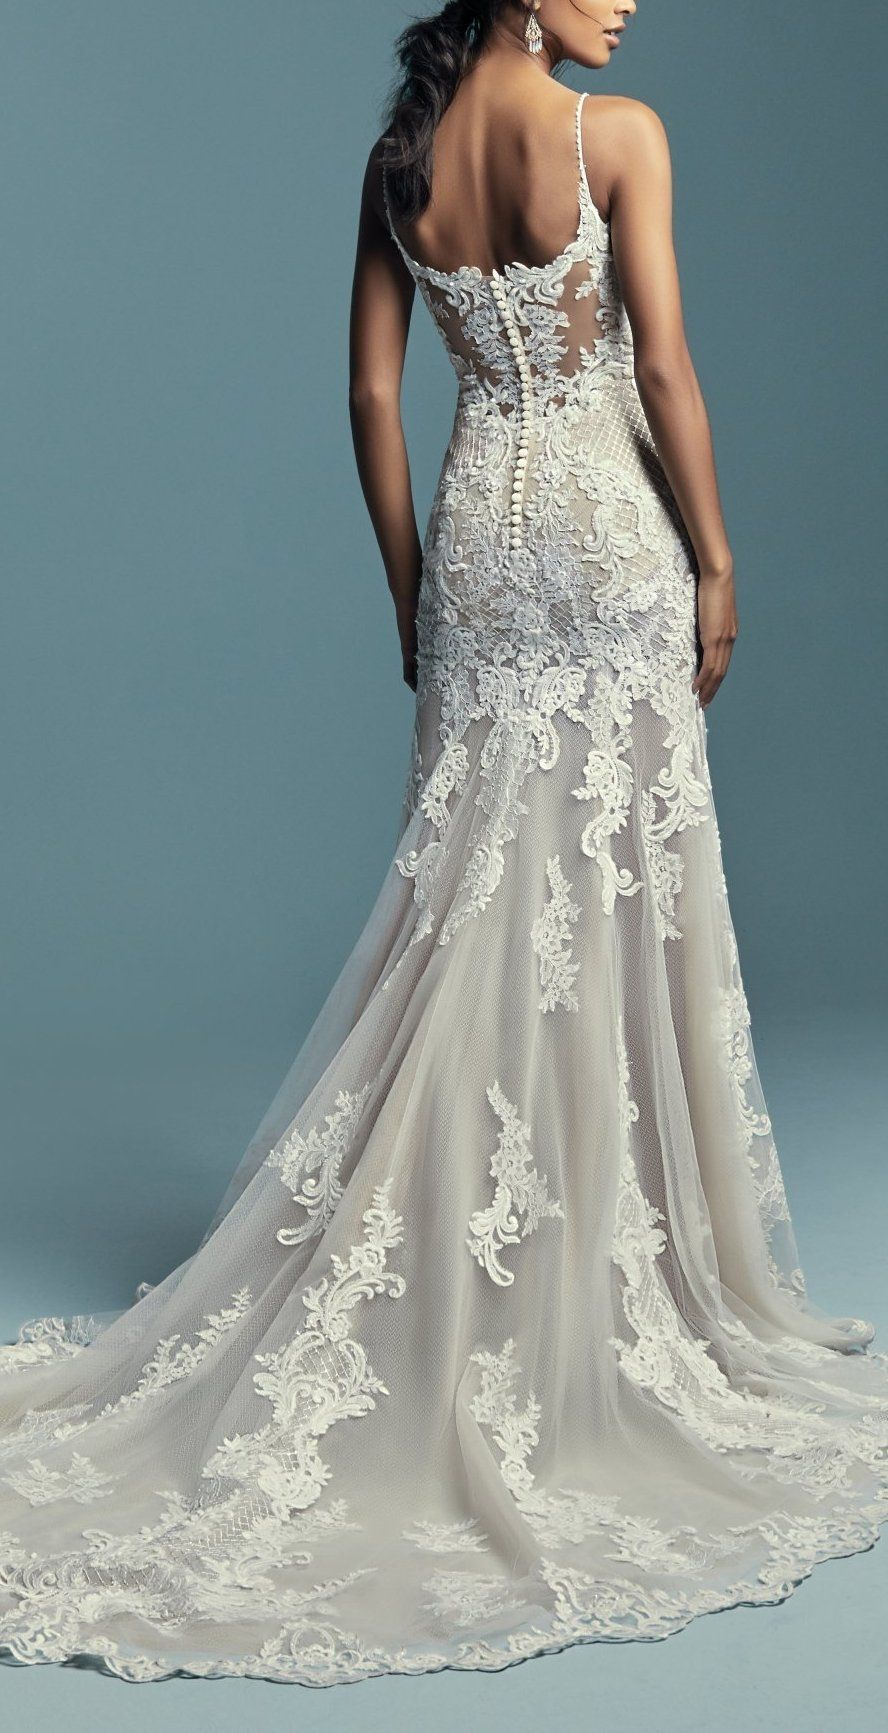 Maggie Sottero Wedding Dresses | Flared skirt, Embroidered lace and ...